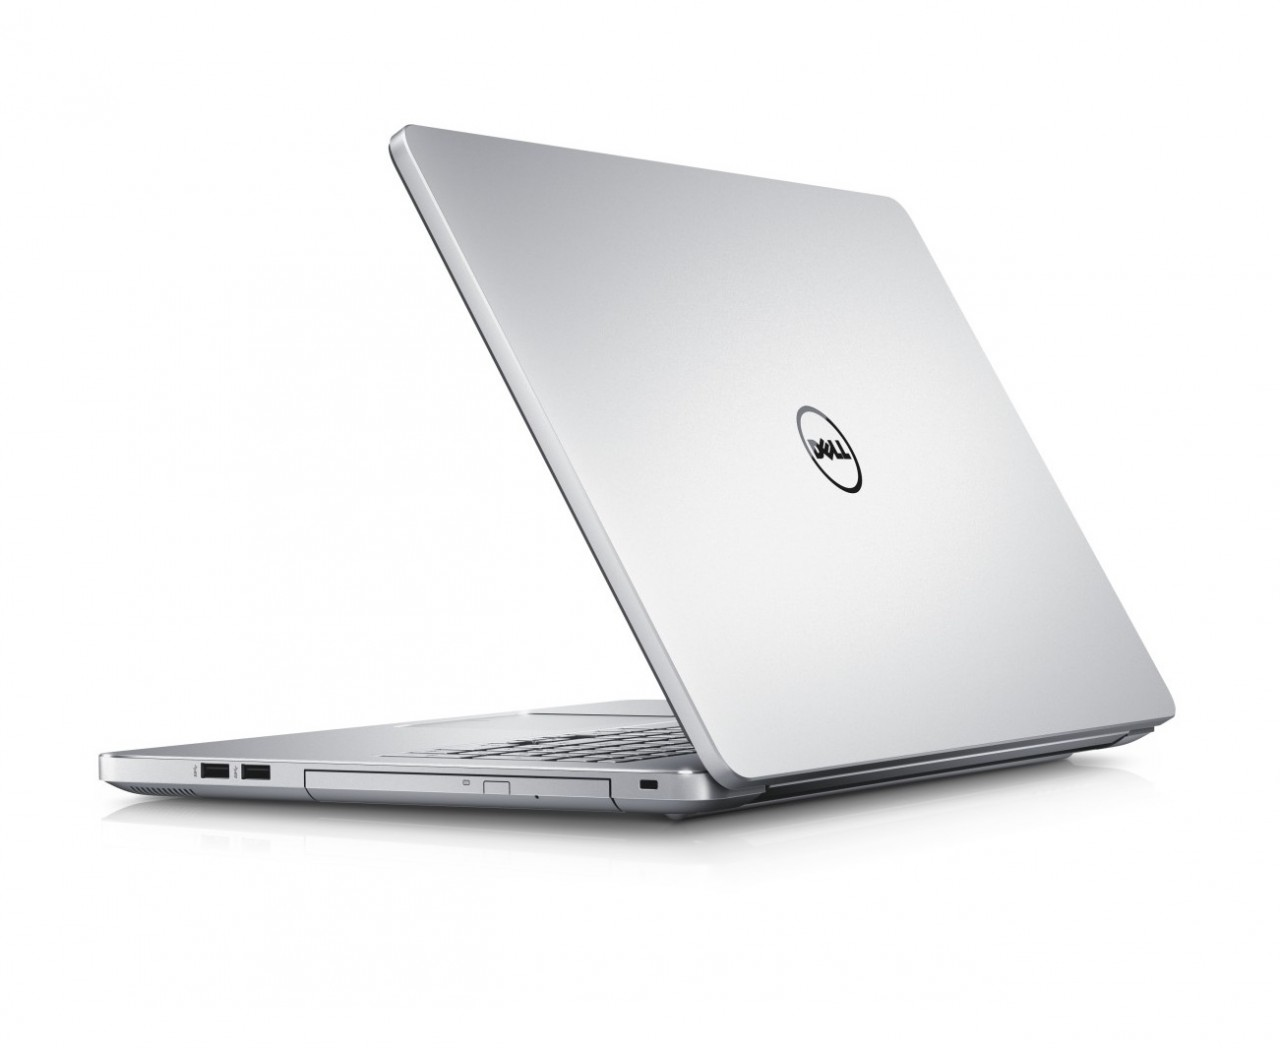 Dell Inspiron 17 7746 2015 Notebook Review